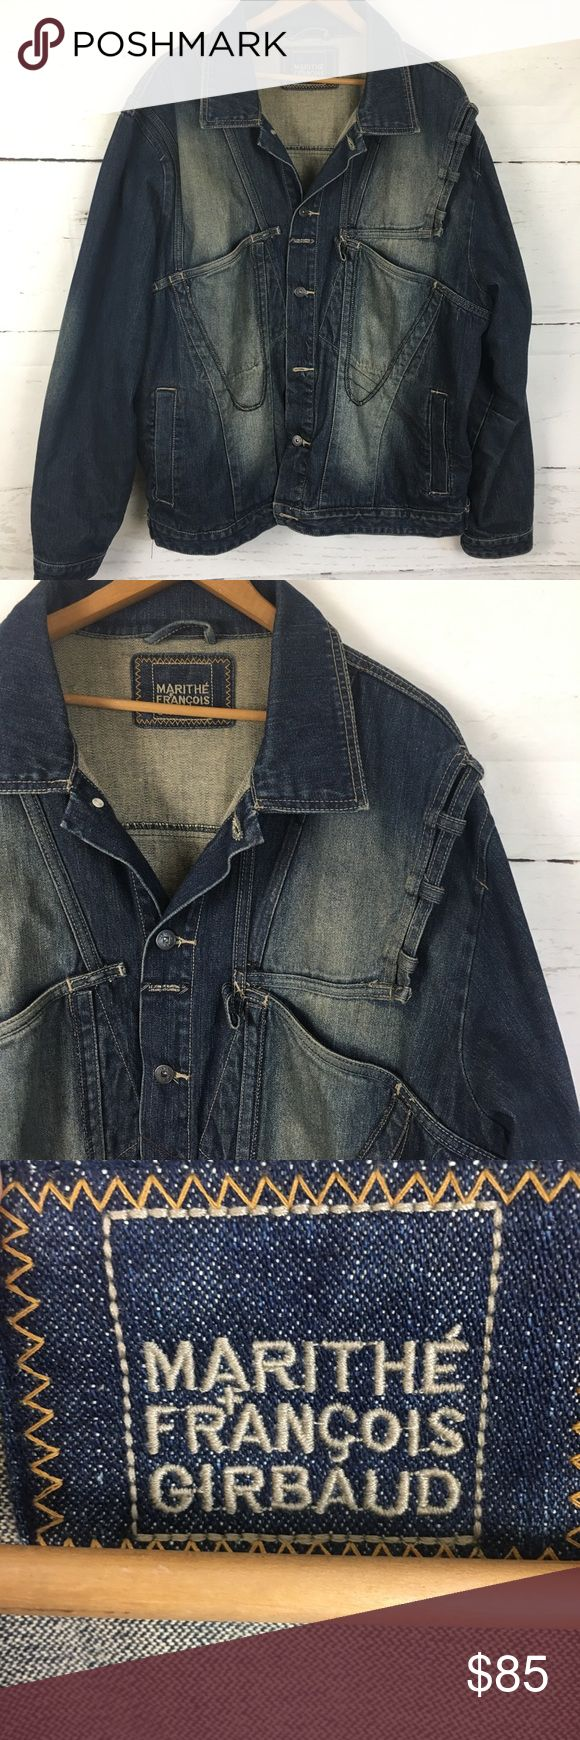 """Marithe Francois Girbaud Men's Jean Jacket 100% Cotton, Preowned, excellent condition, Distressed. Approximate measurements: 50"""" chest, 21"""" shoulder, 27.5 length, 27"""" Sleeve. Detailed, Distressed, Jean Jacket with big pockets from Marithe Francois Girbaud. Marithe Francois Girbaud Jackets & Coats"""